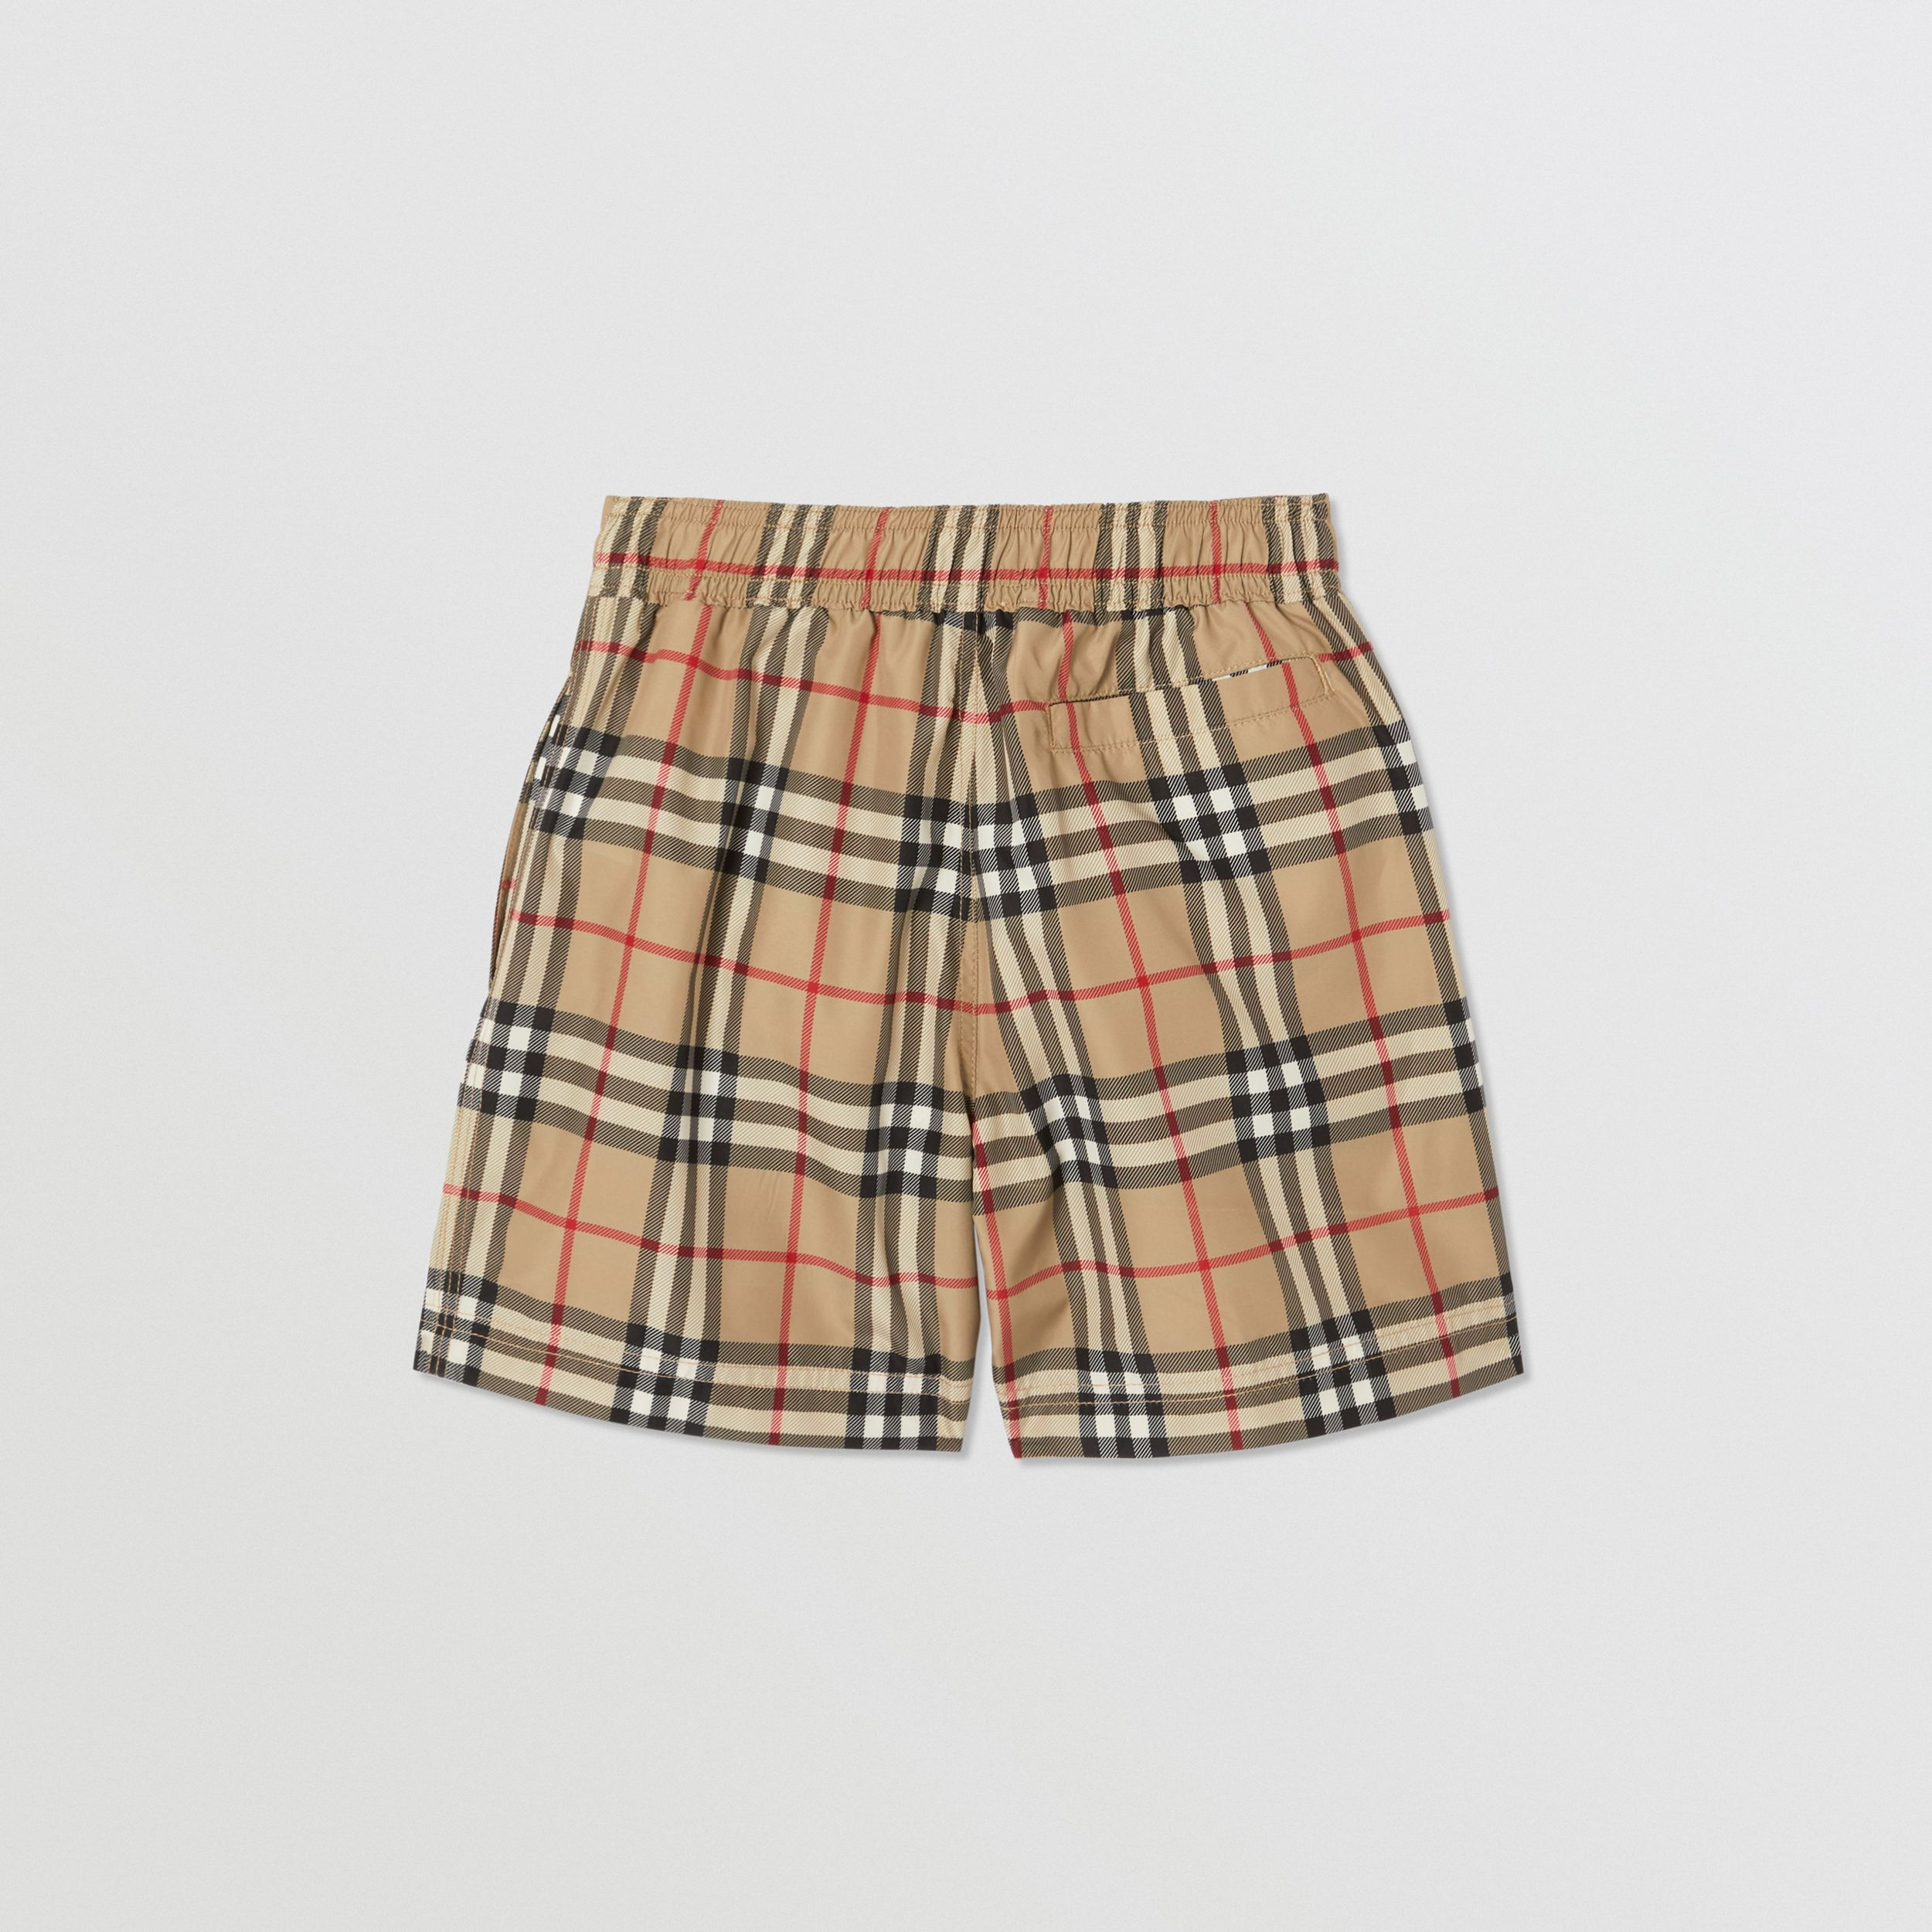 Logo Appliqué Vintage Check Swim Shorts in Archive Beige | Burberry - 4